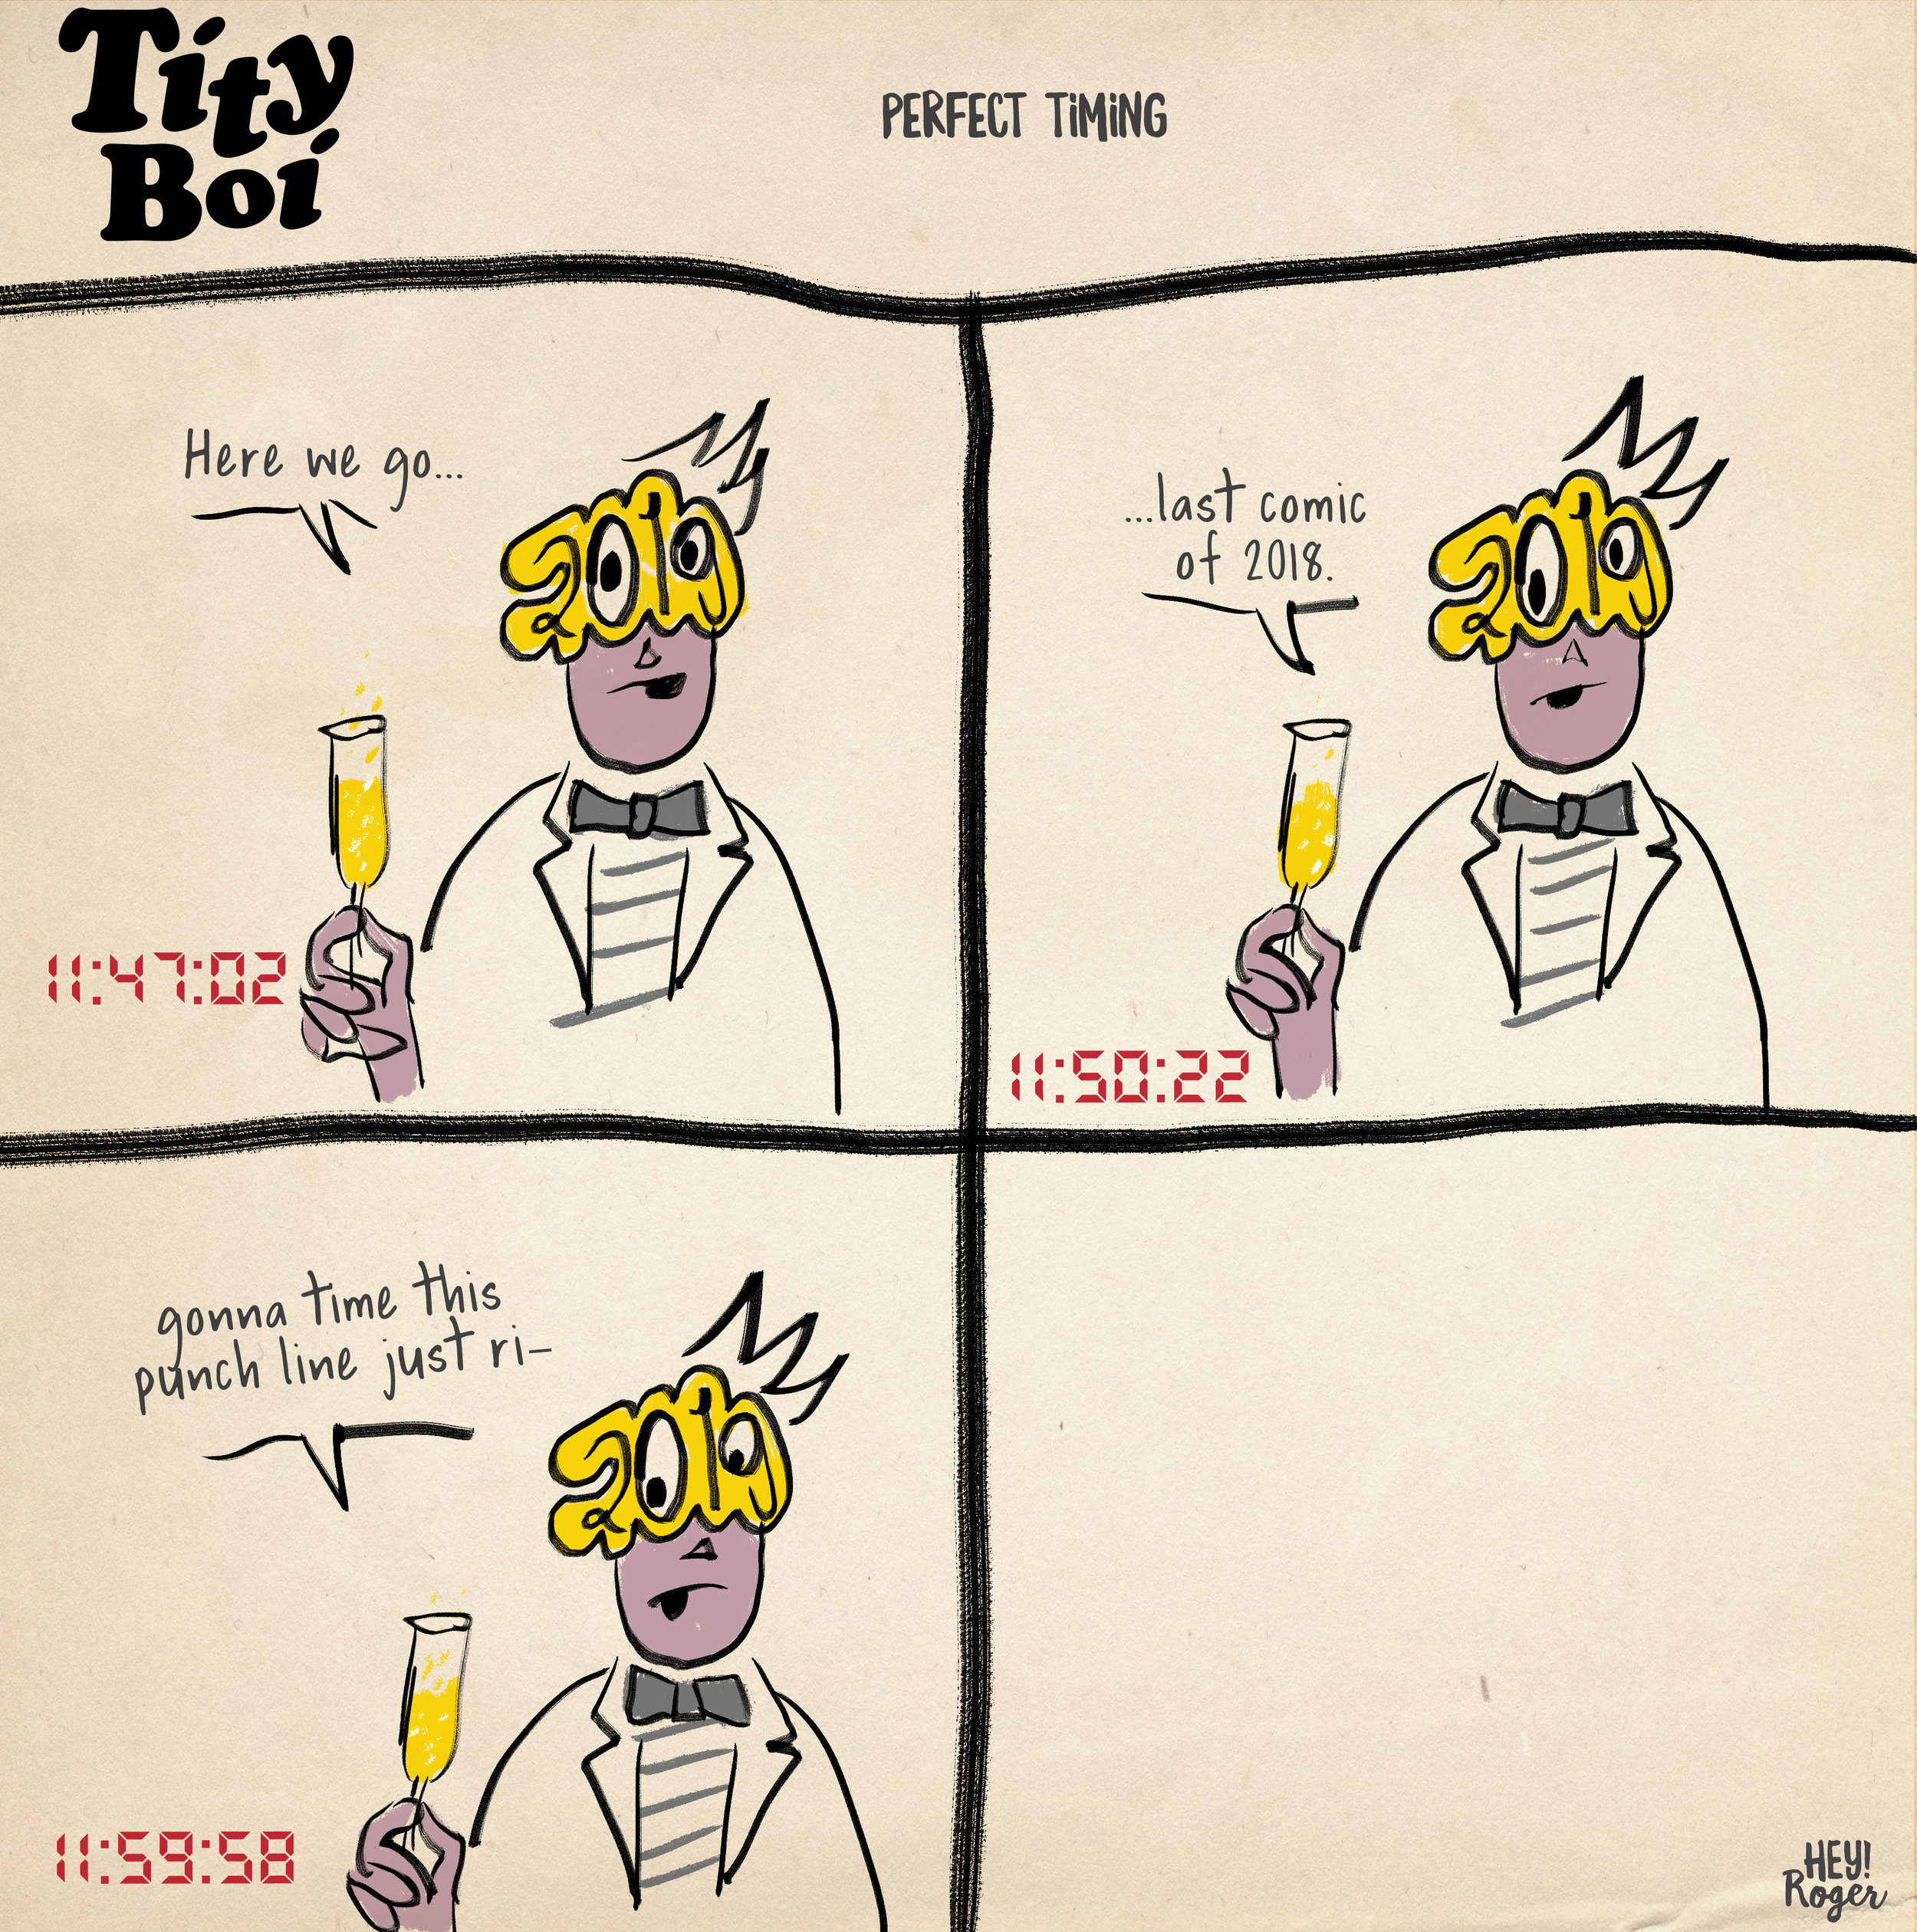 A webcomic about New Years Eve 2018.